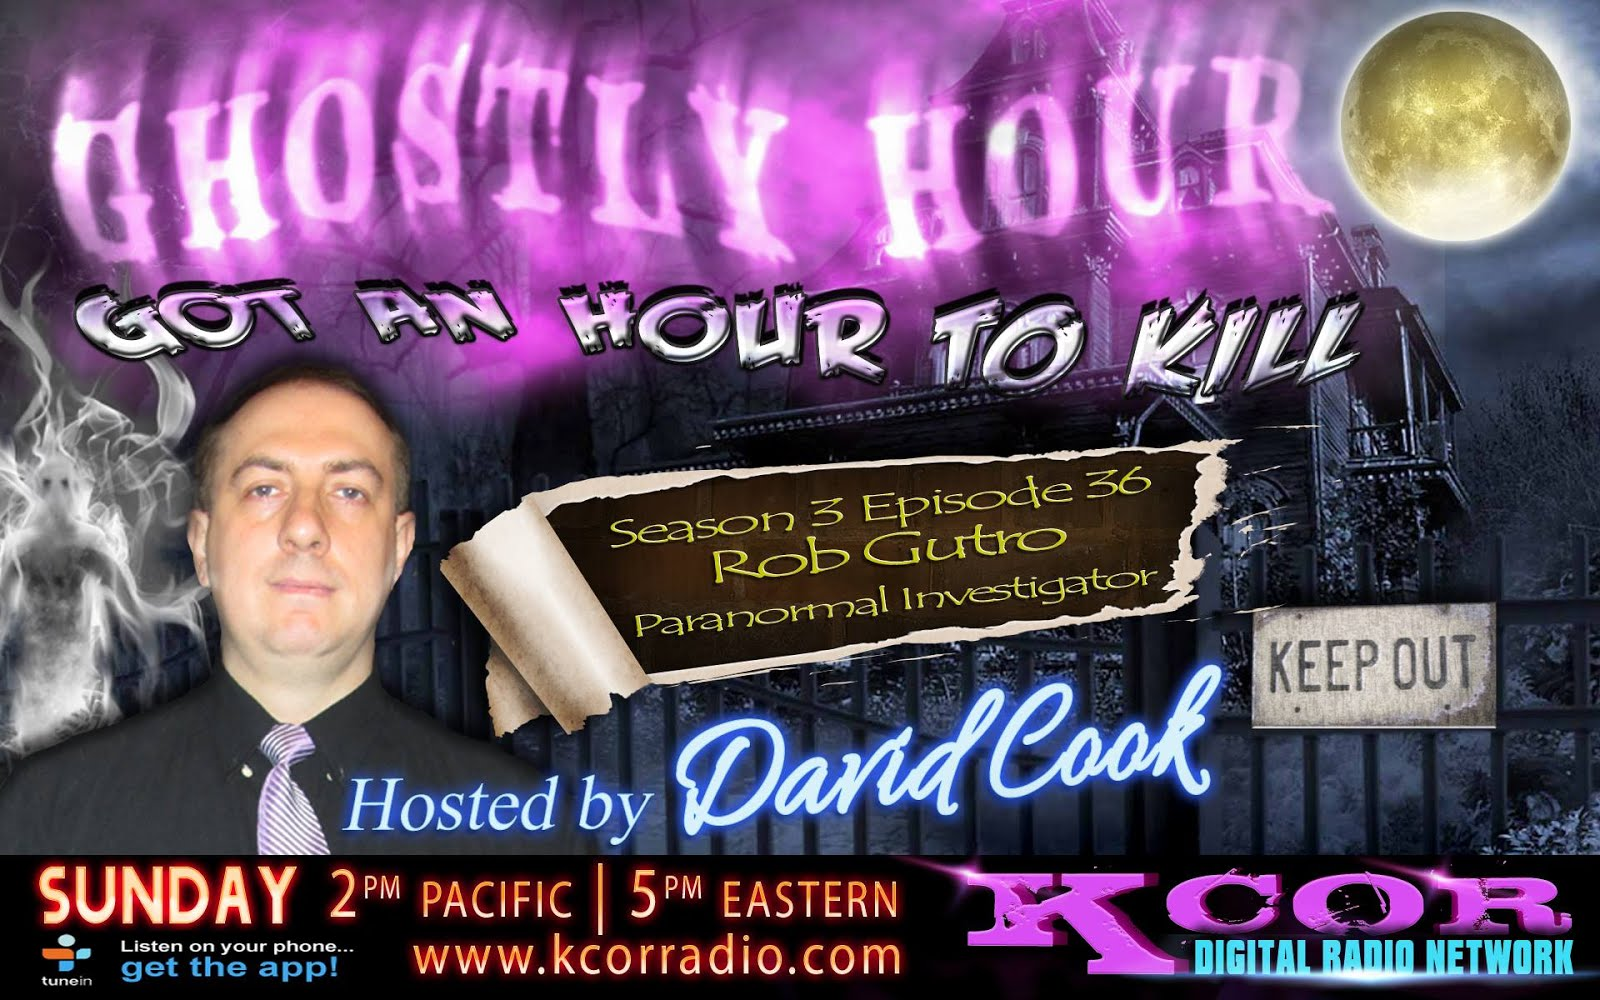 Rob Gutro on UK's Ghostly Hour show!